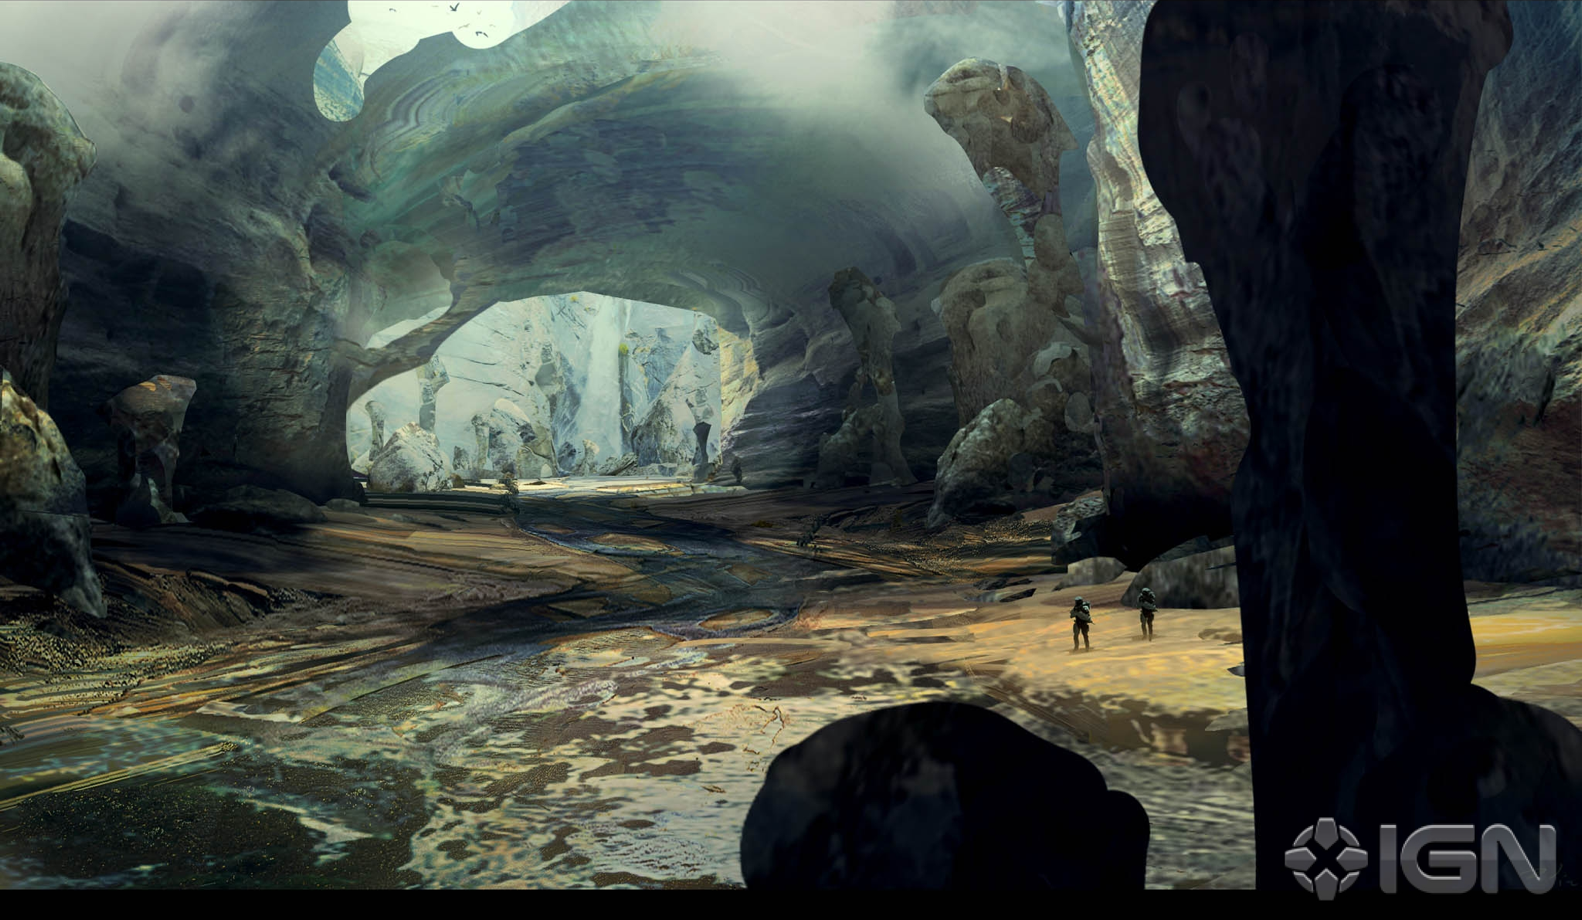 Halo 4 Castle Map Pack Release On April Fools Halo Diehards